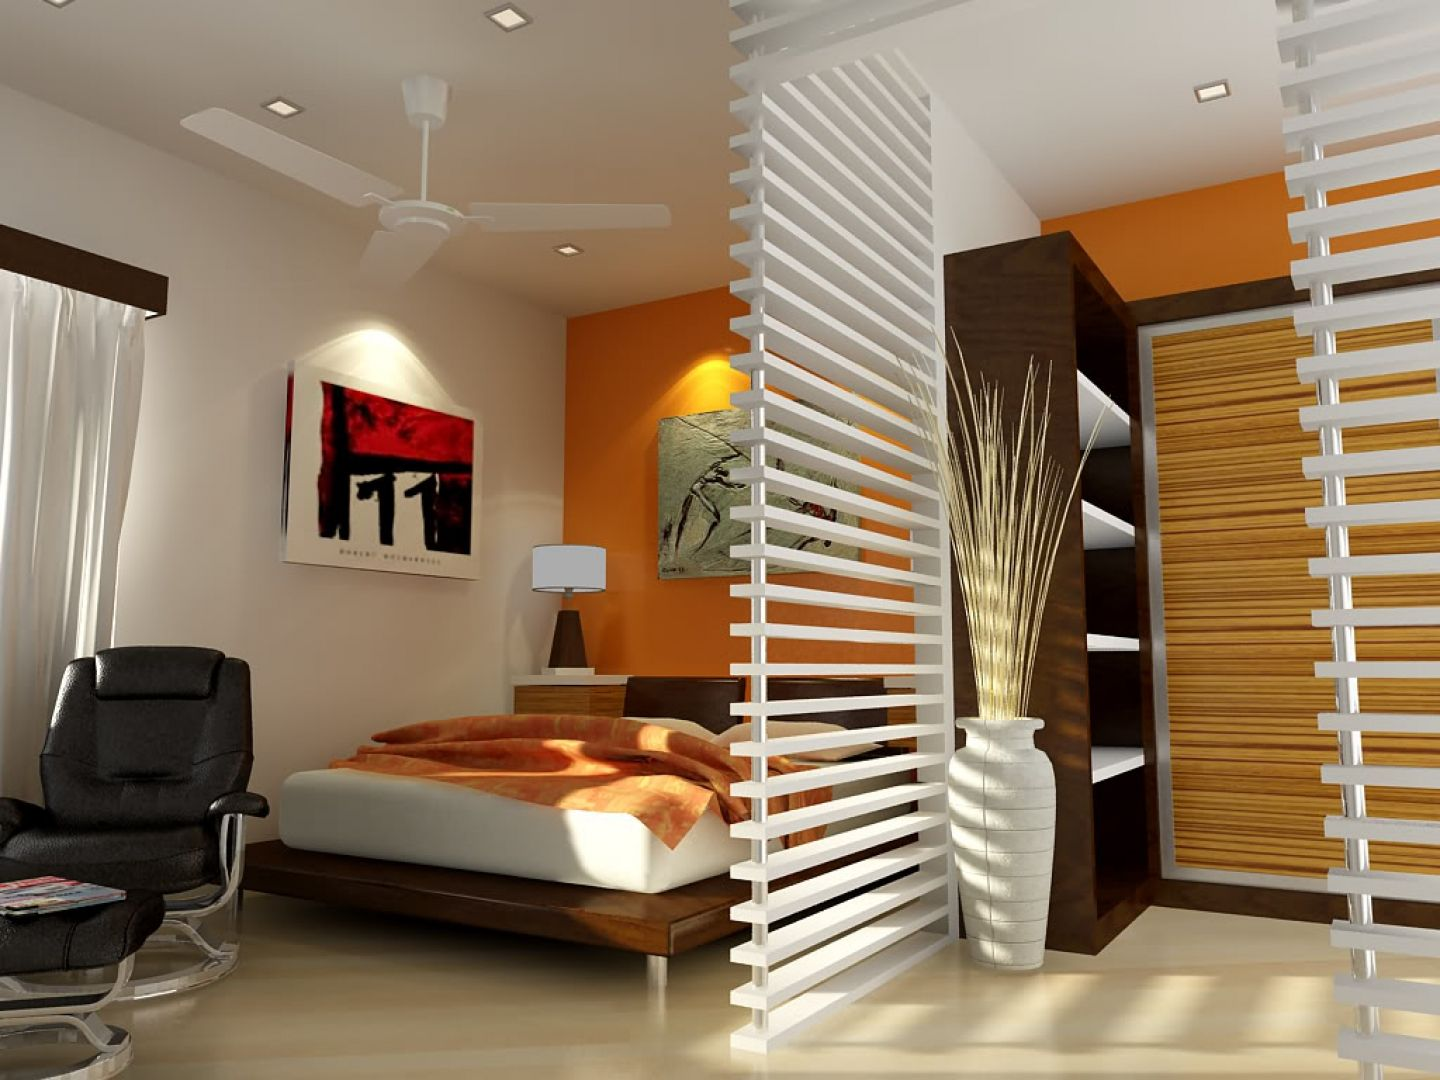 interior design ideas small homes - 1000+ images about Feng shui/studio ideas on Pinterest Feng shui ...